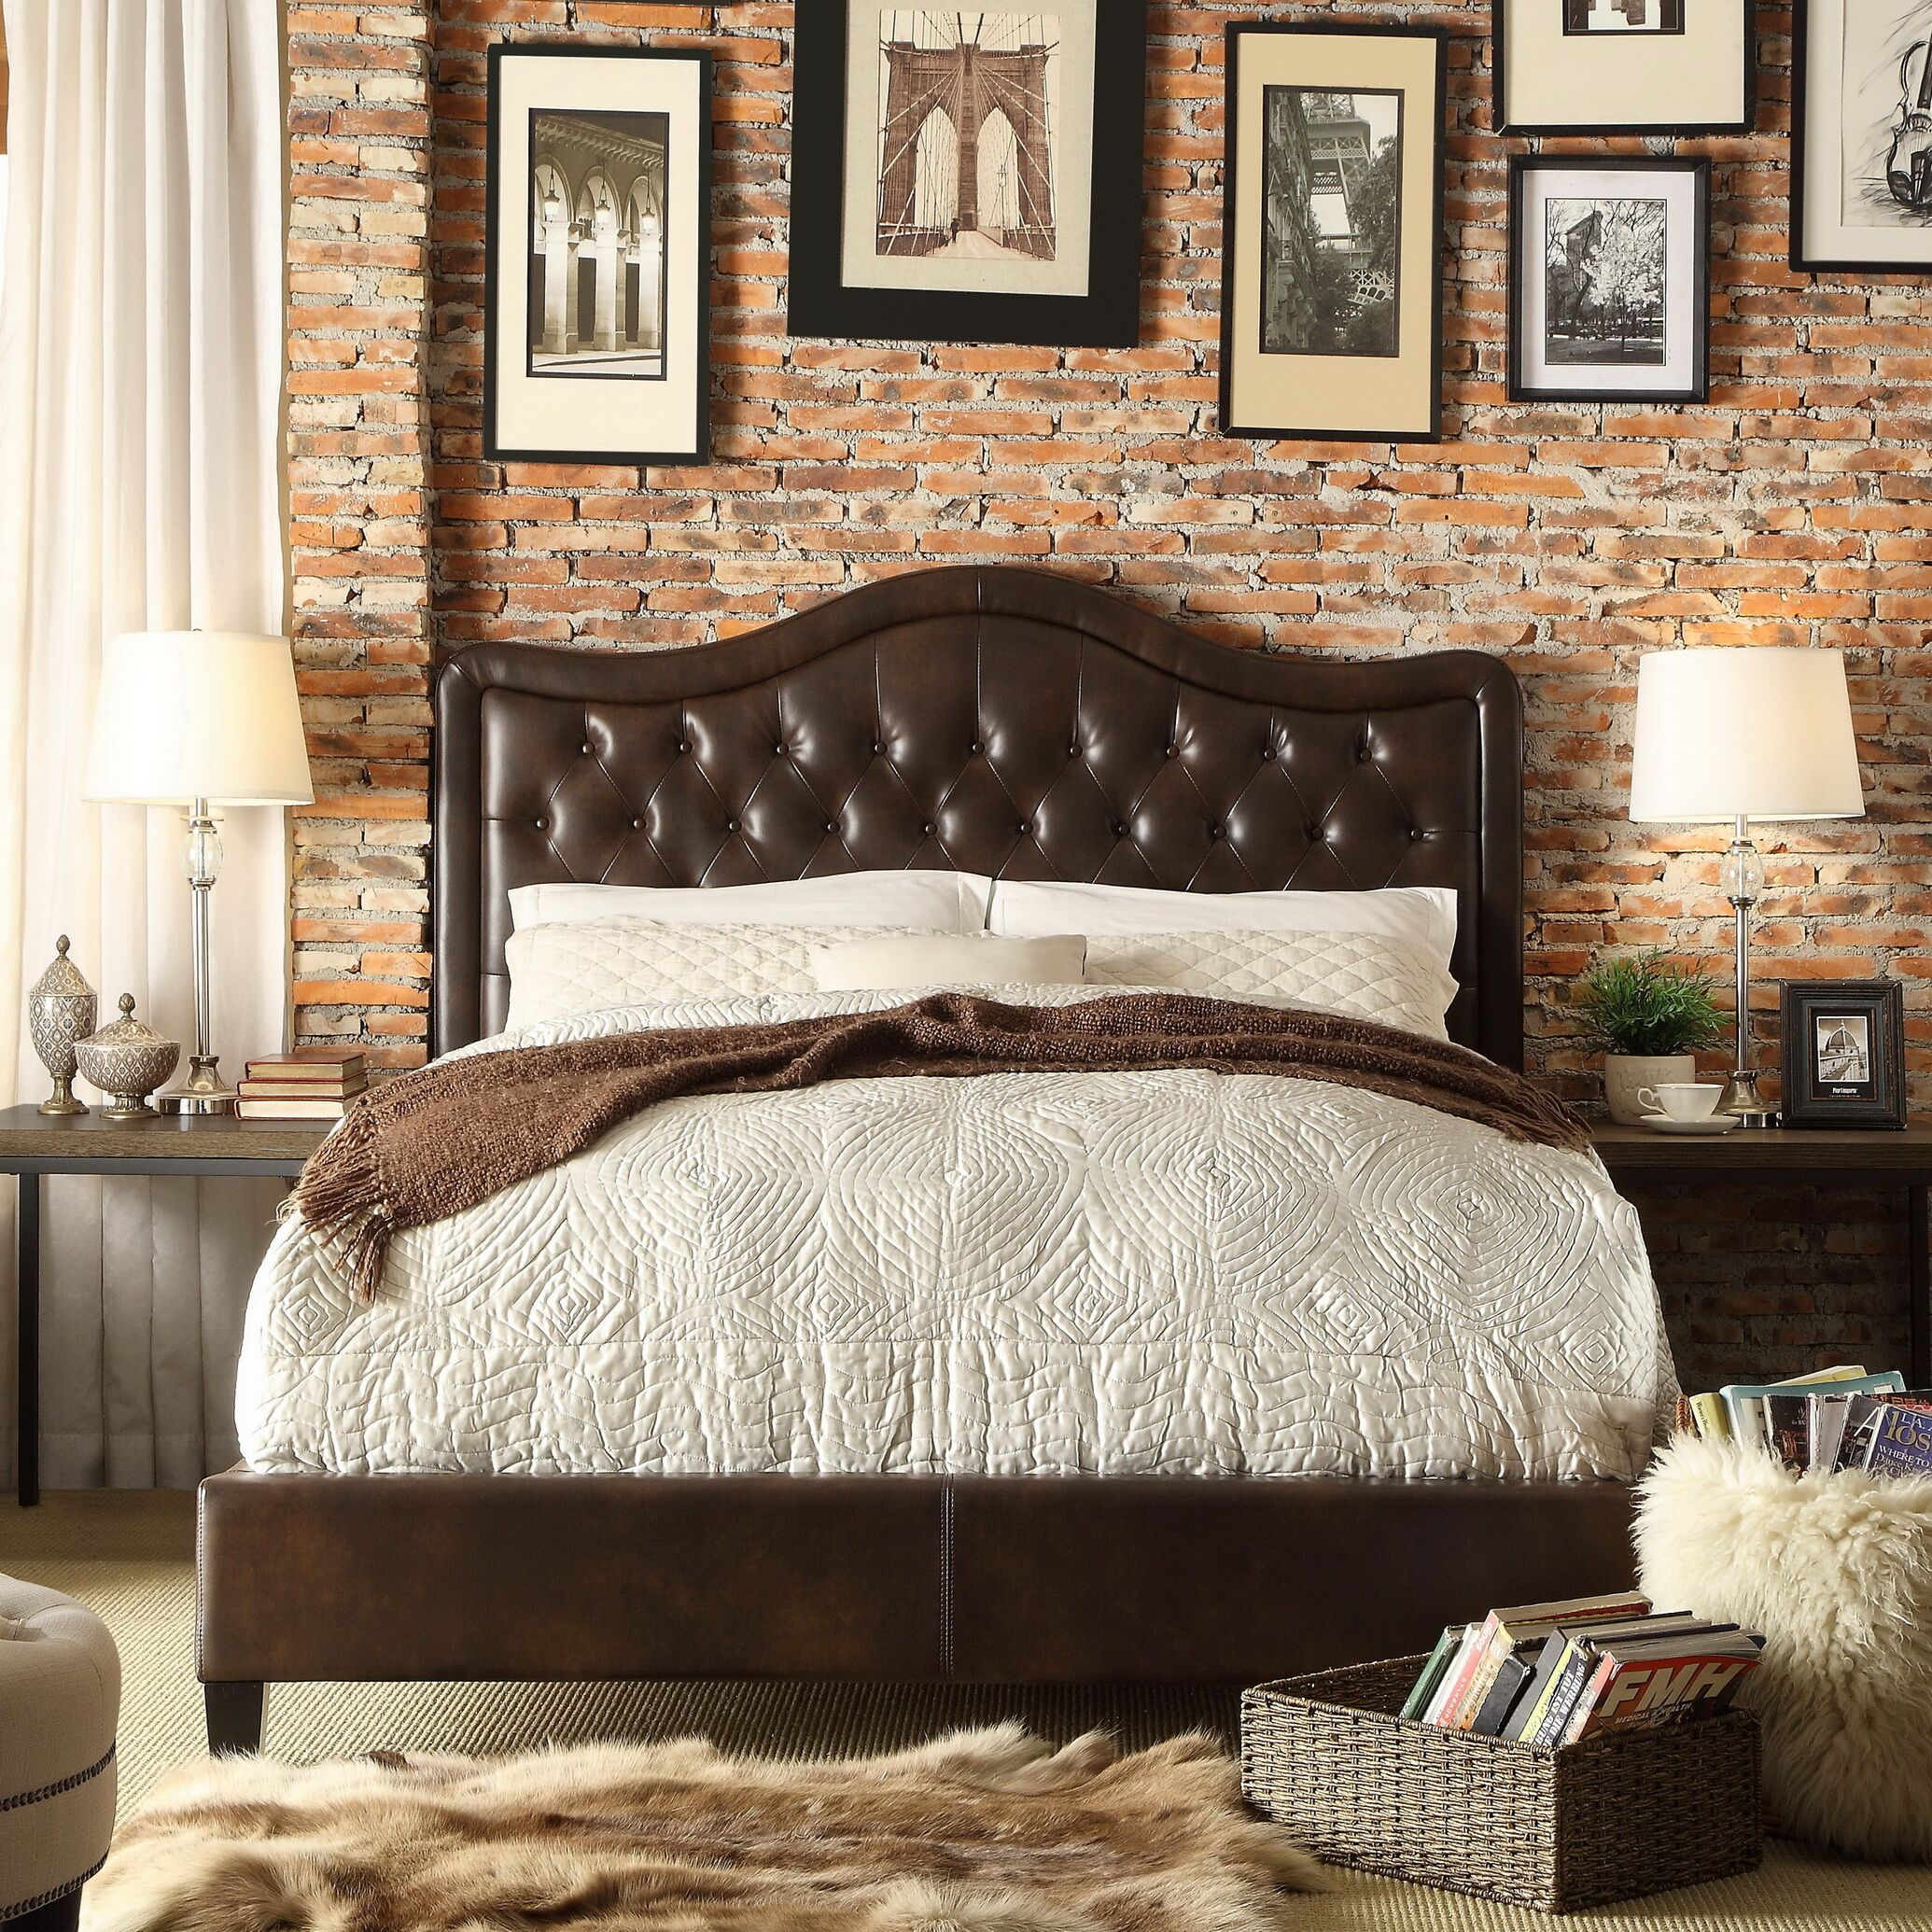 Turin Upholstered Platform Bed Size: Queen, Color: Espresso, Upholstery Type: Leather